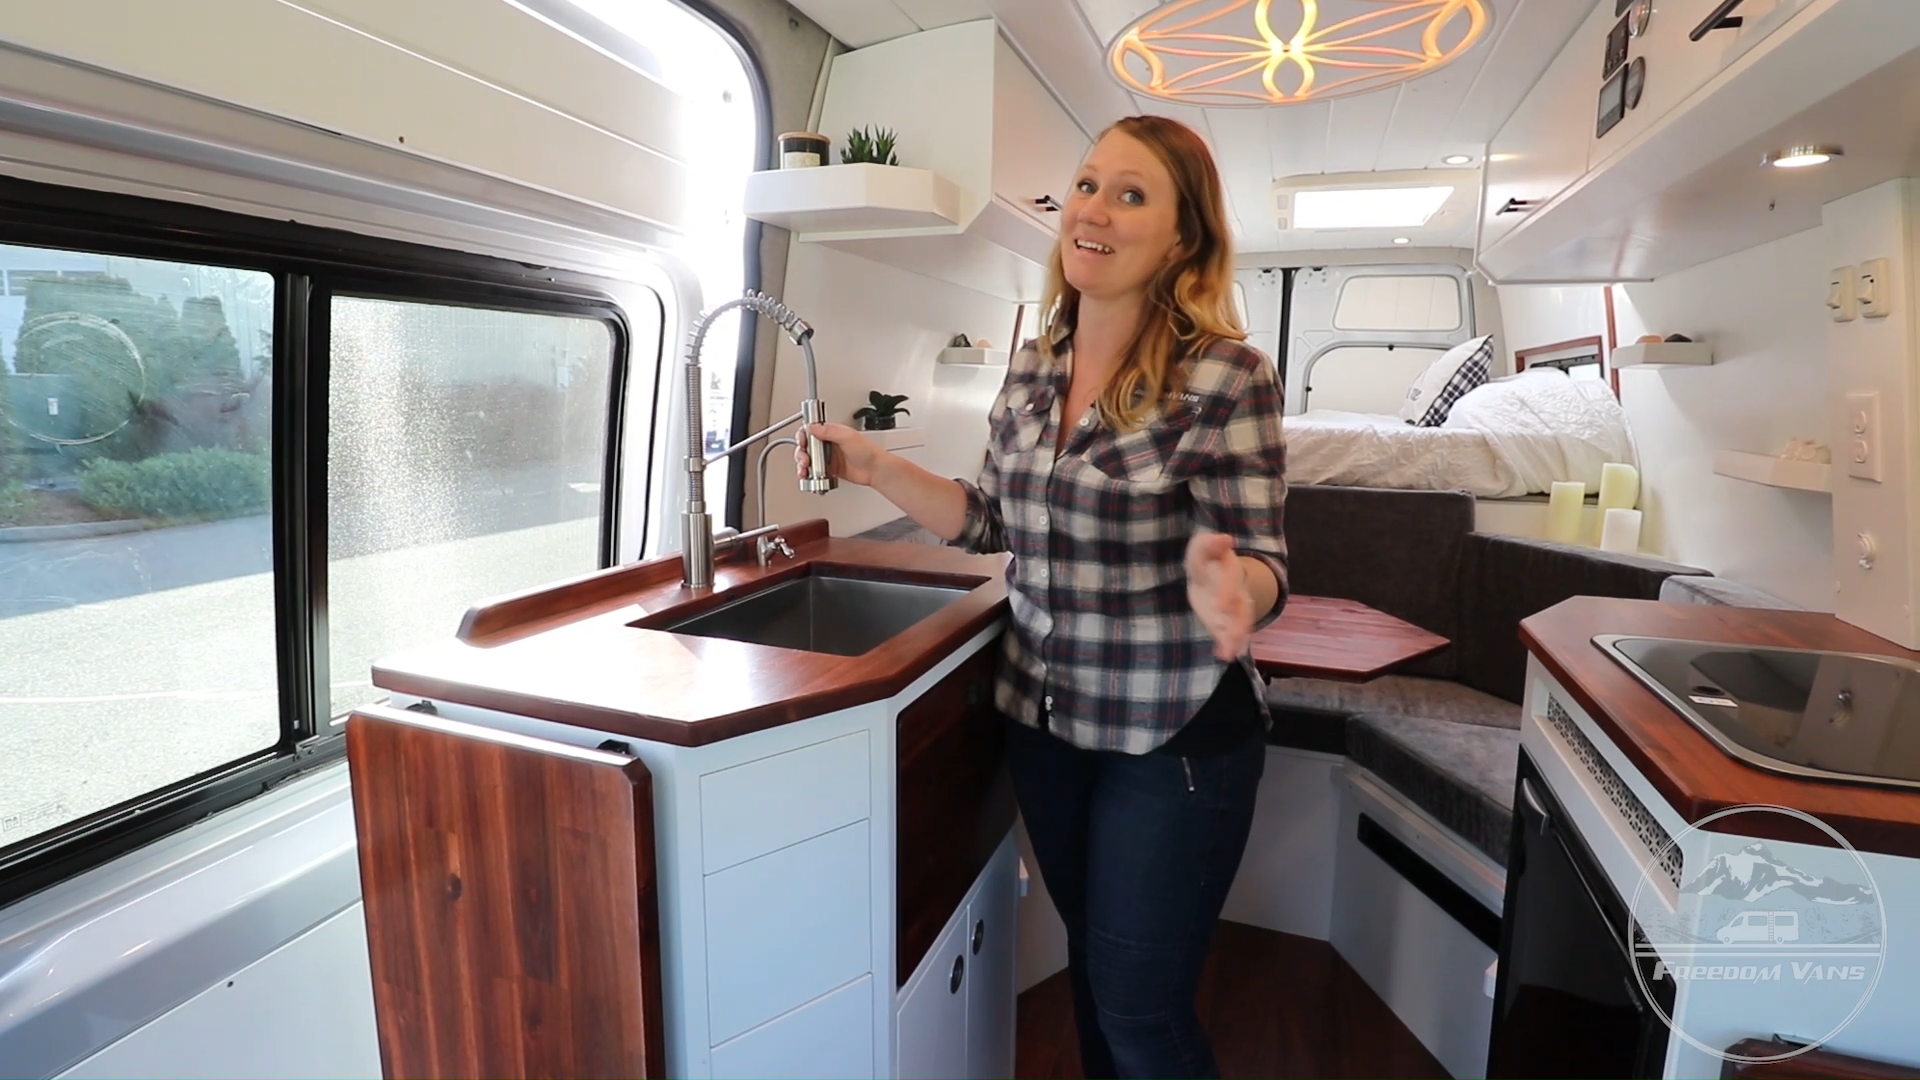 This van conversion, inspired by sacred geometry, is one of Freedom Vans' most unique builds yet! You can find out more information on the project gallery of our website. #van #vanlife #sprintervan #sprinterconversion #freedomvans